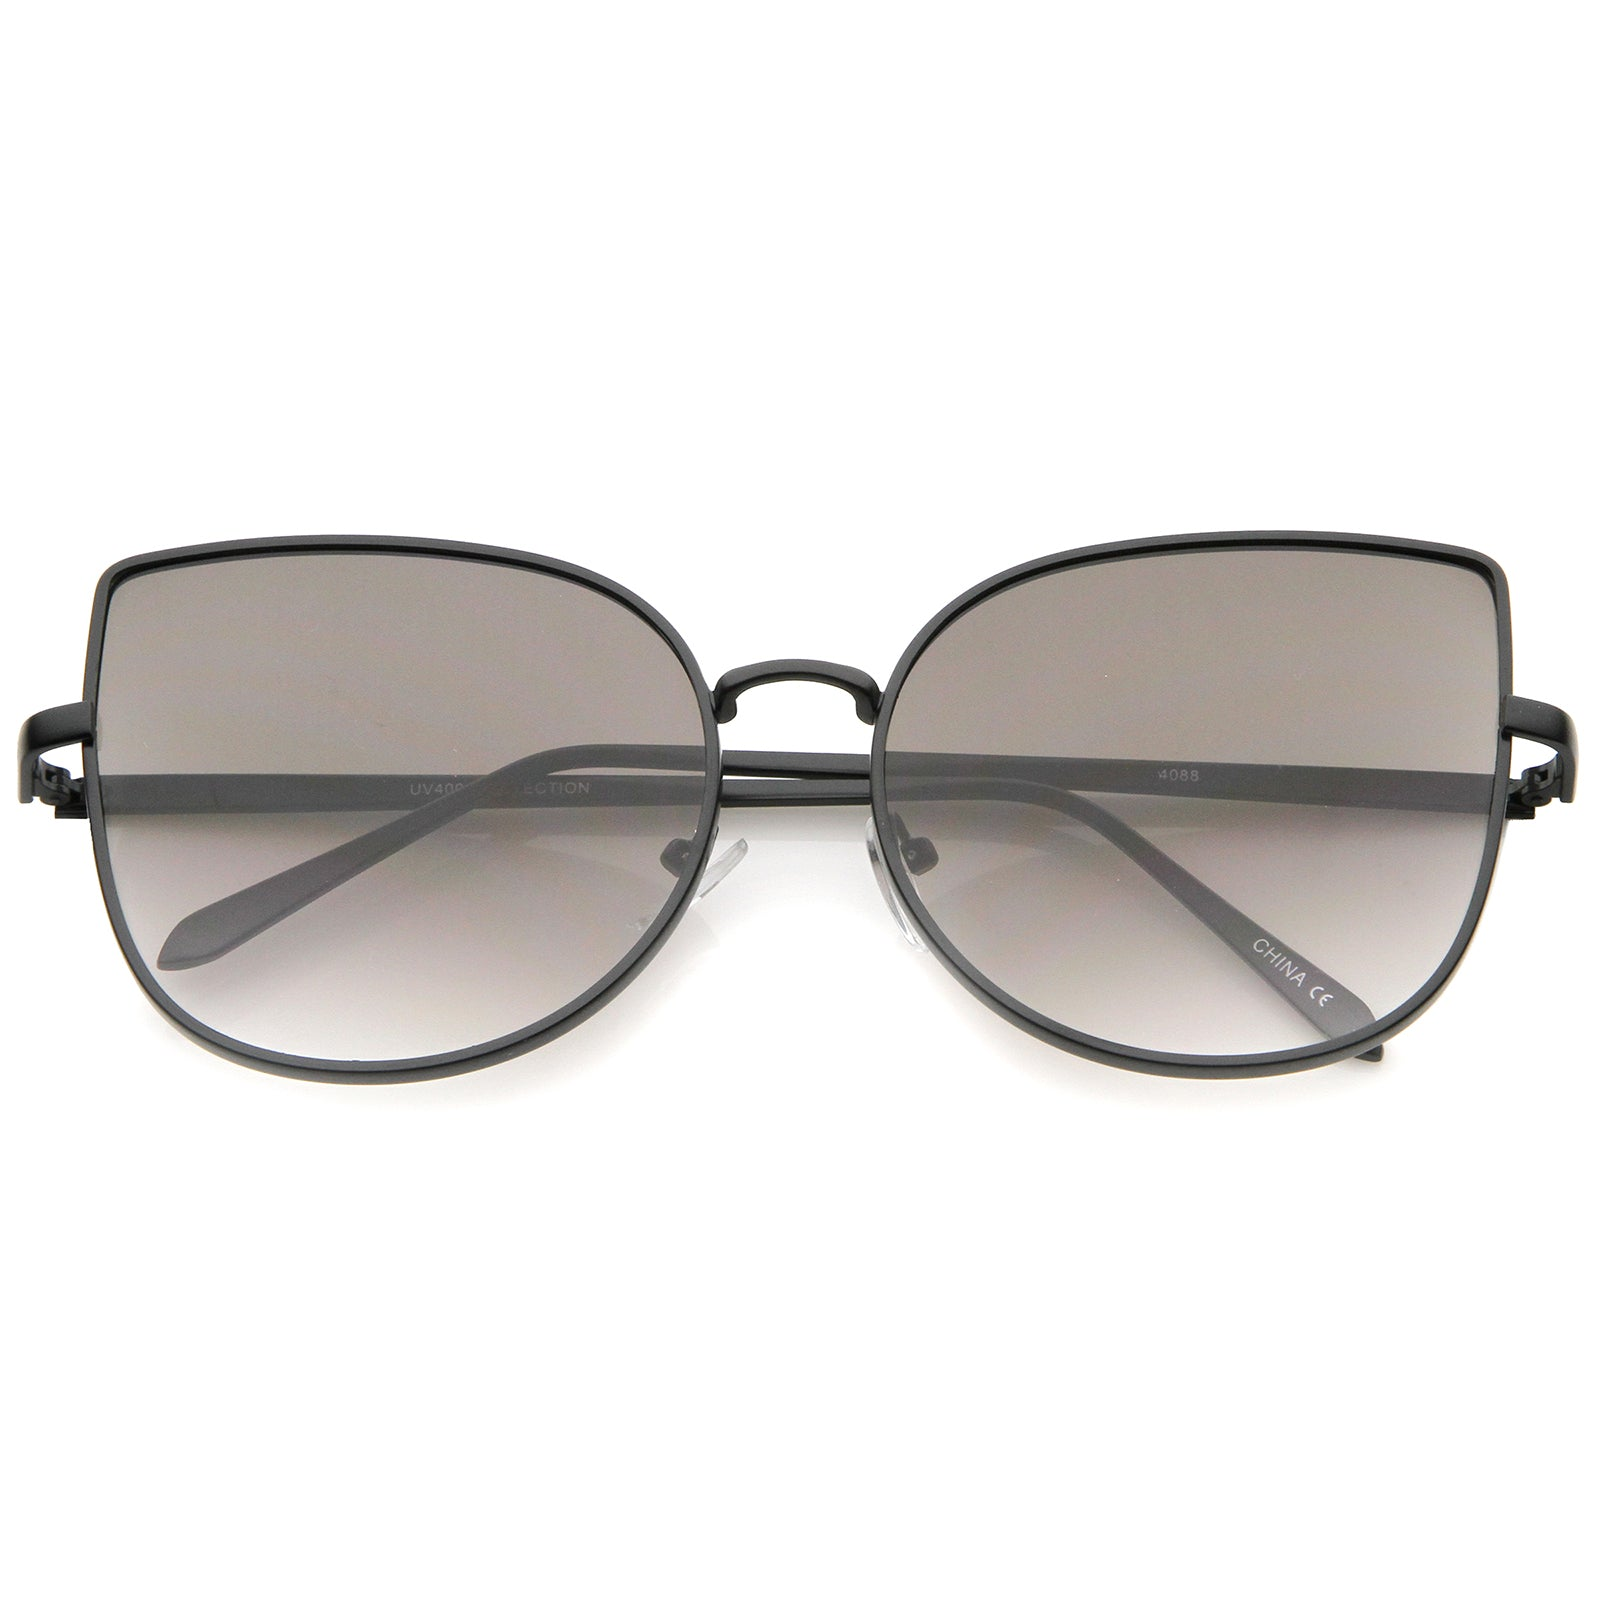 Women's Oversize Slim Metal Frame Gradient Flat Lens Cat Eye Sunglasses 58mm - sunglass.la - 7